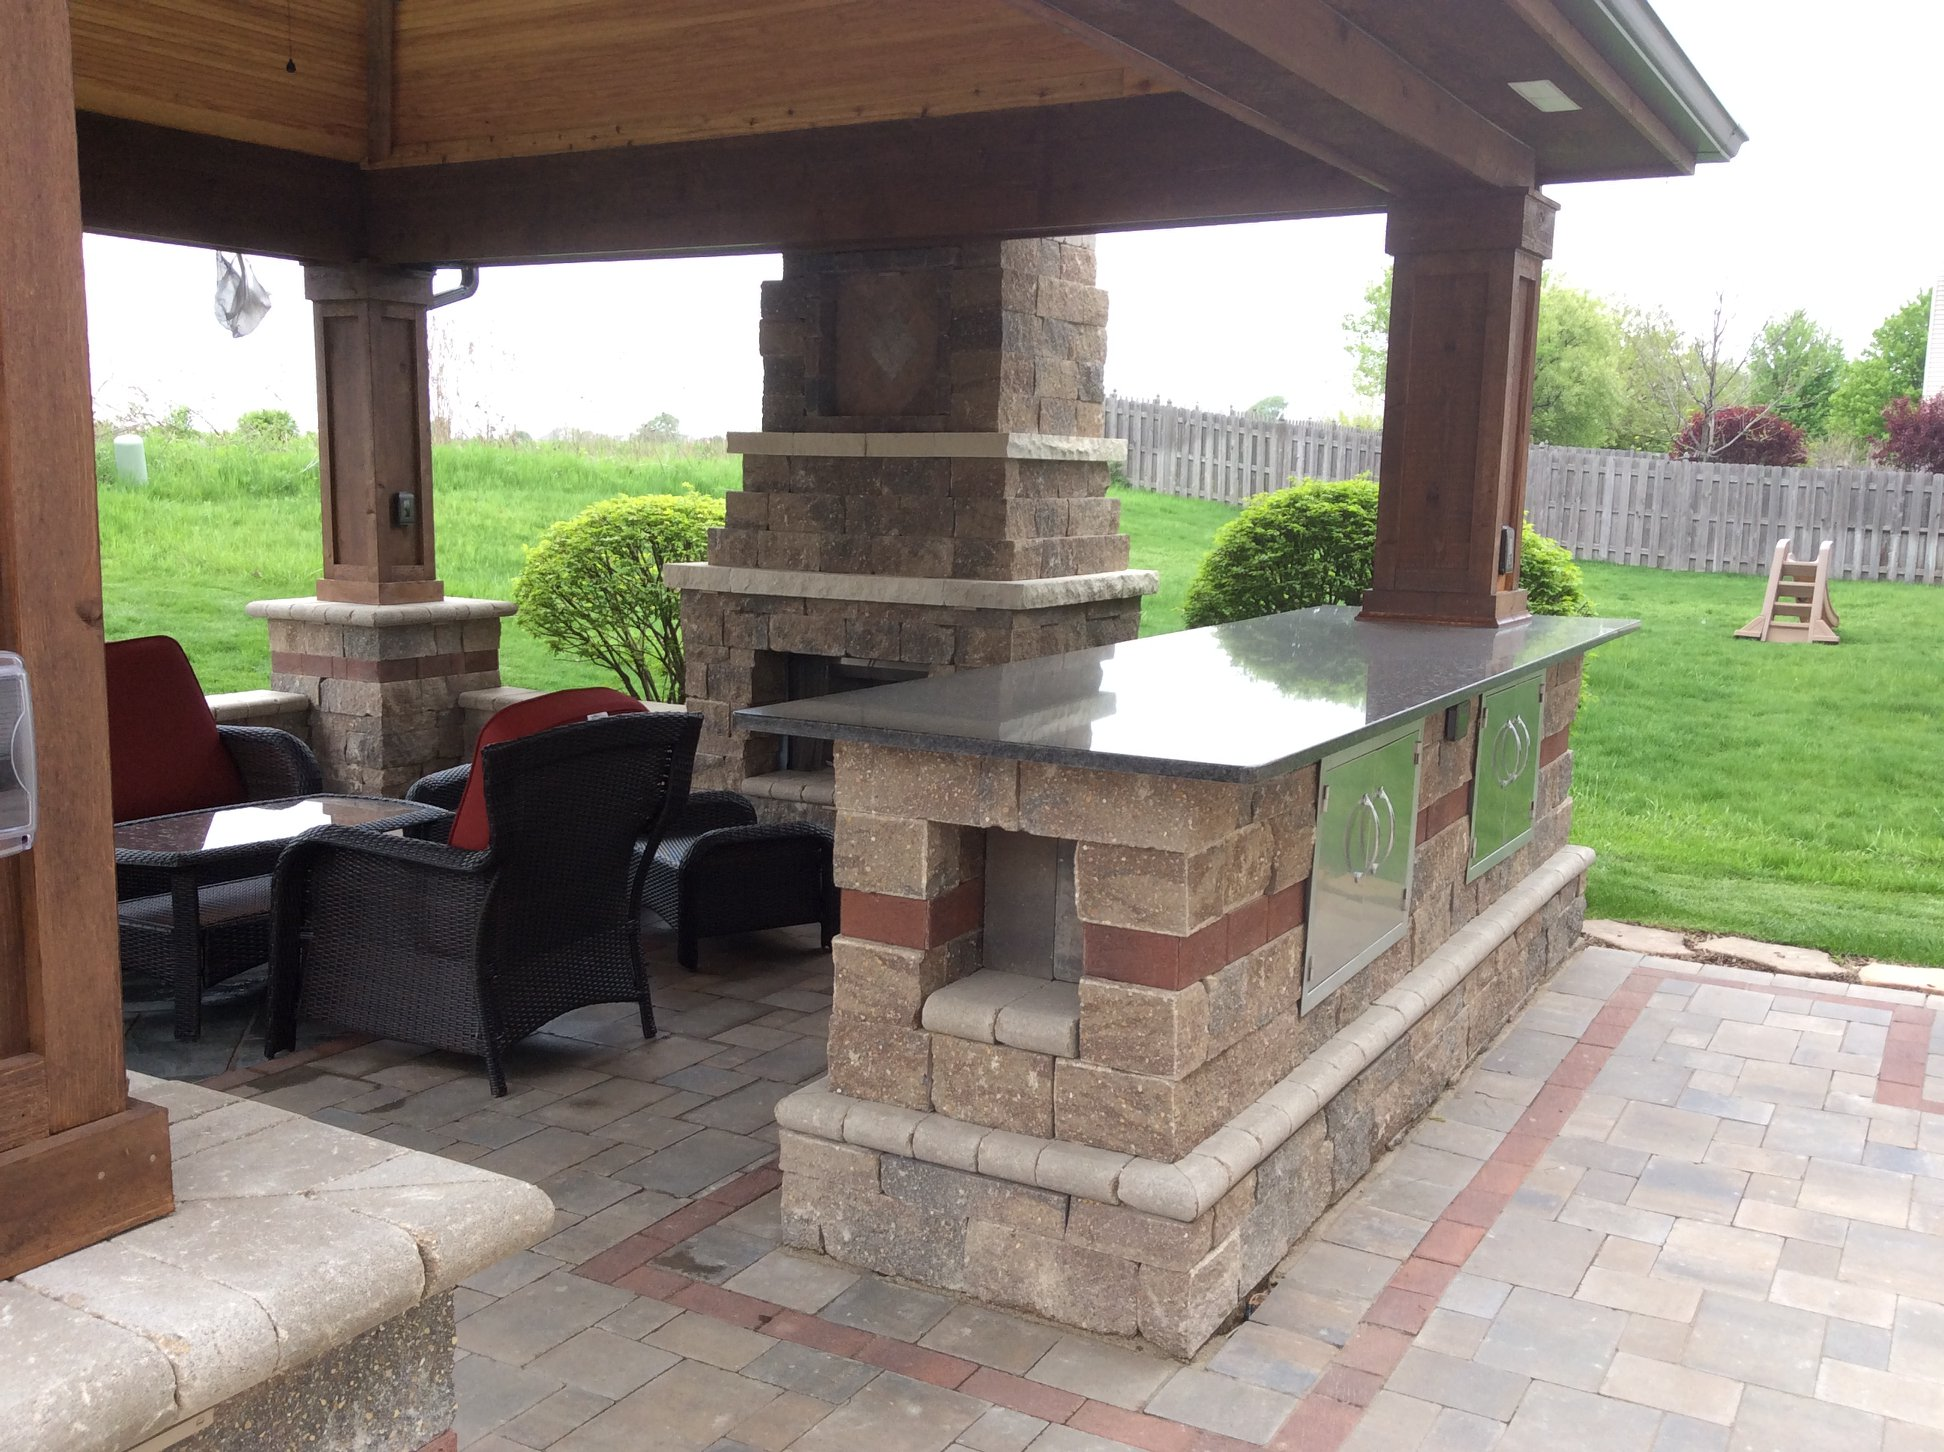 Brick paving patio that includes outdoor kitchen and outdoor fireplace in Hinsdale, IL